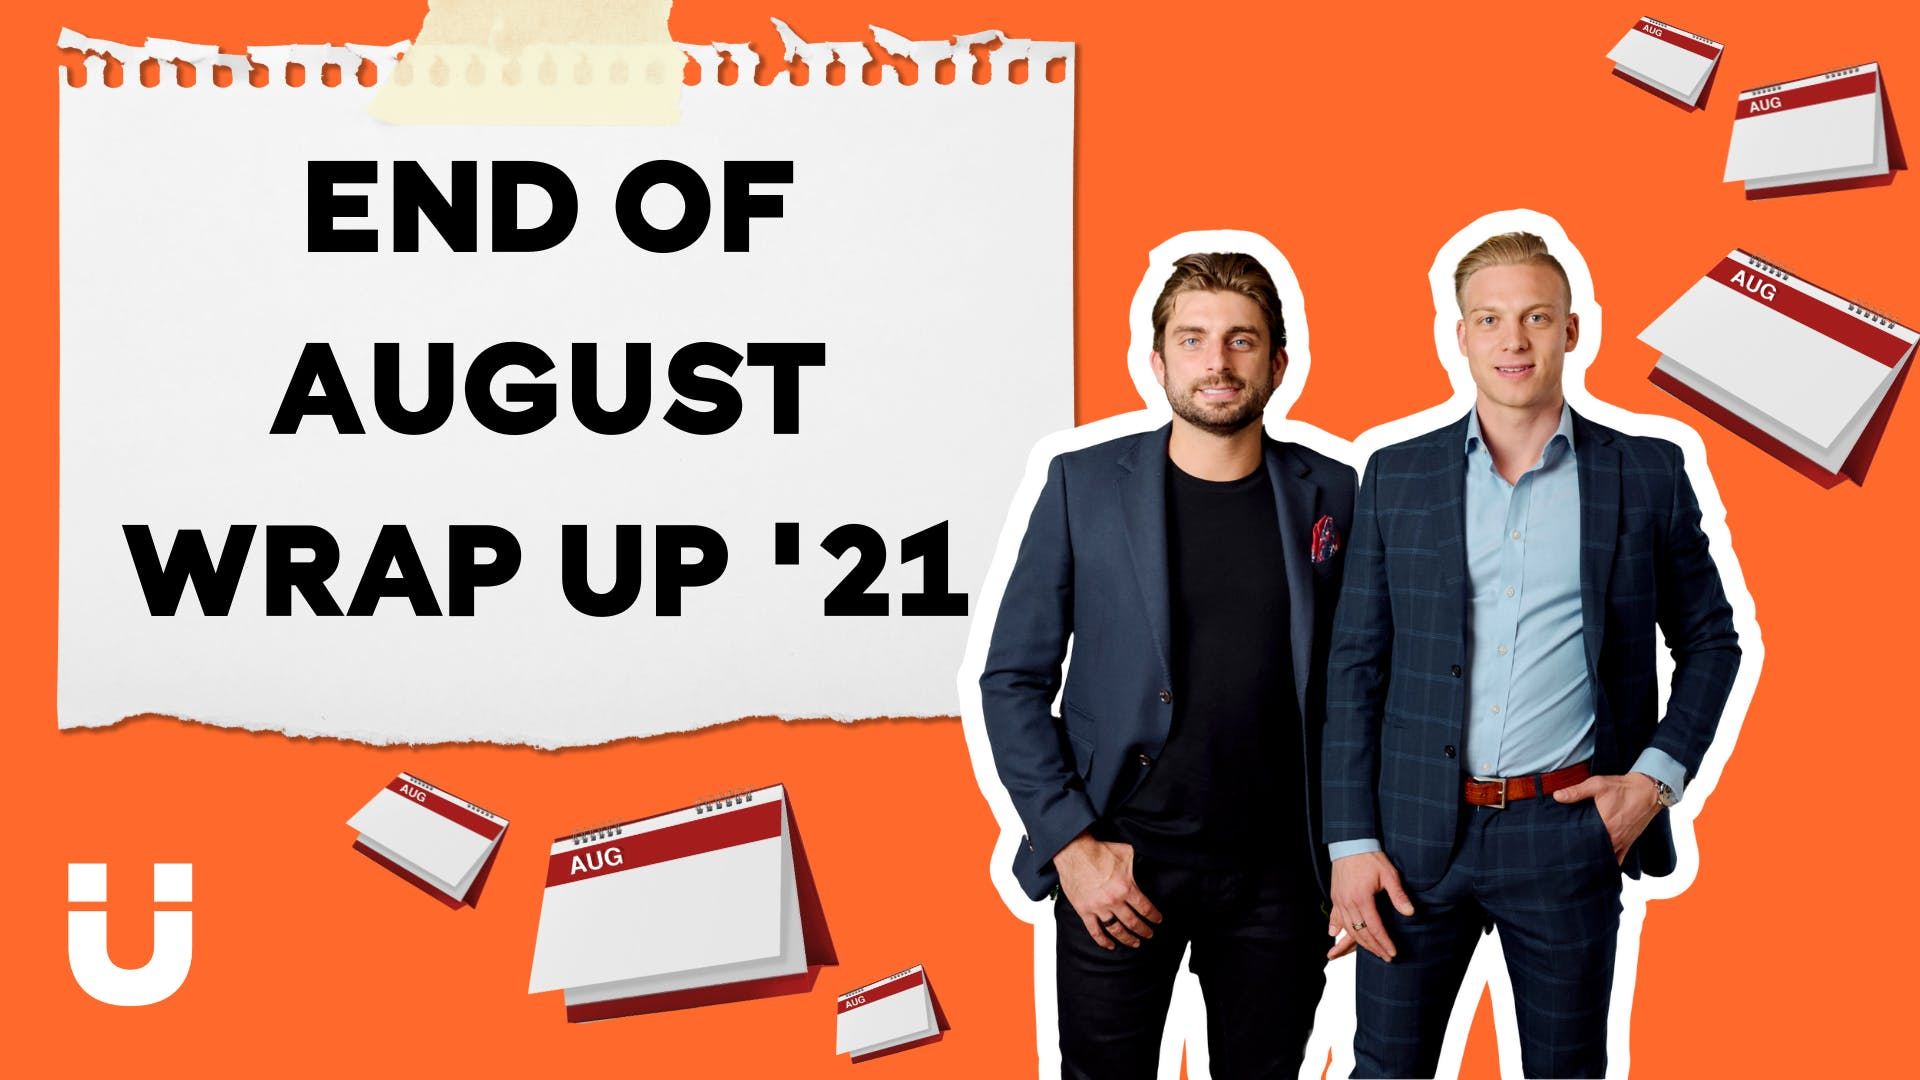 The time has come for an End of August Wrap Up with none other than Sourci Founders Giovanni and Ellie 🎉🙌